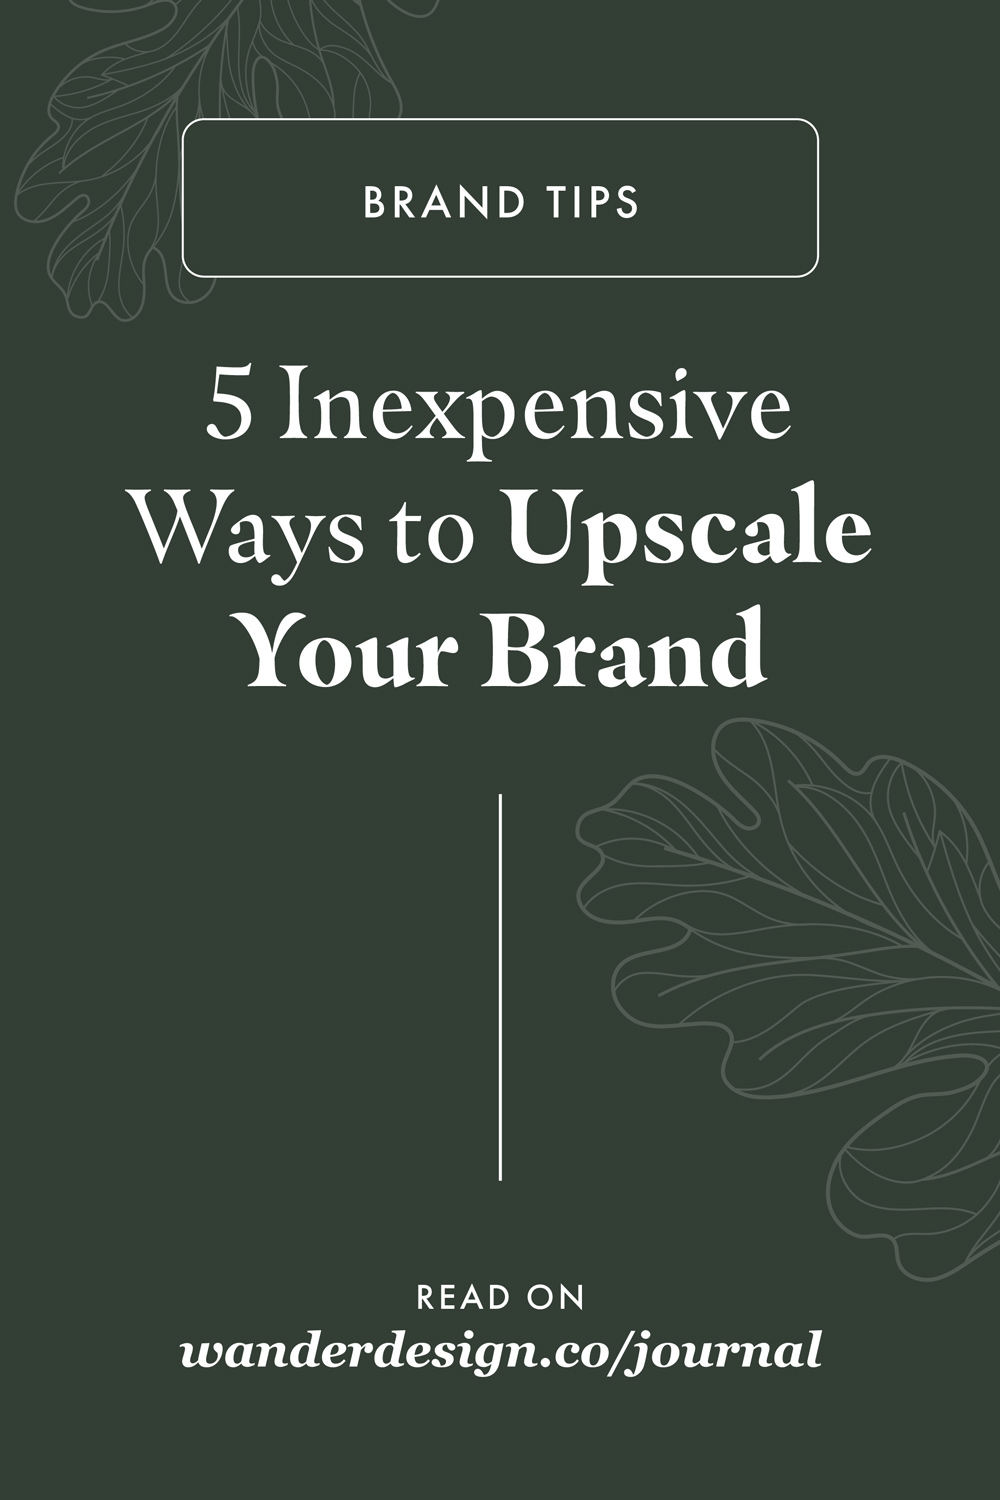 5 Inexpensive Ways to Upscale Your Brand